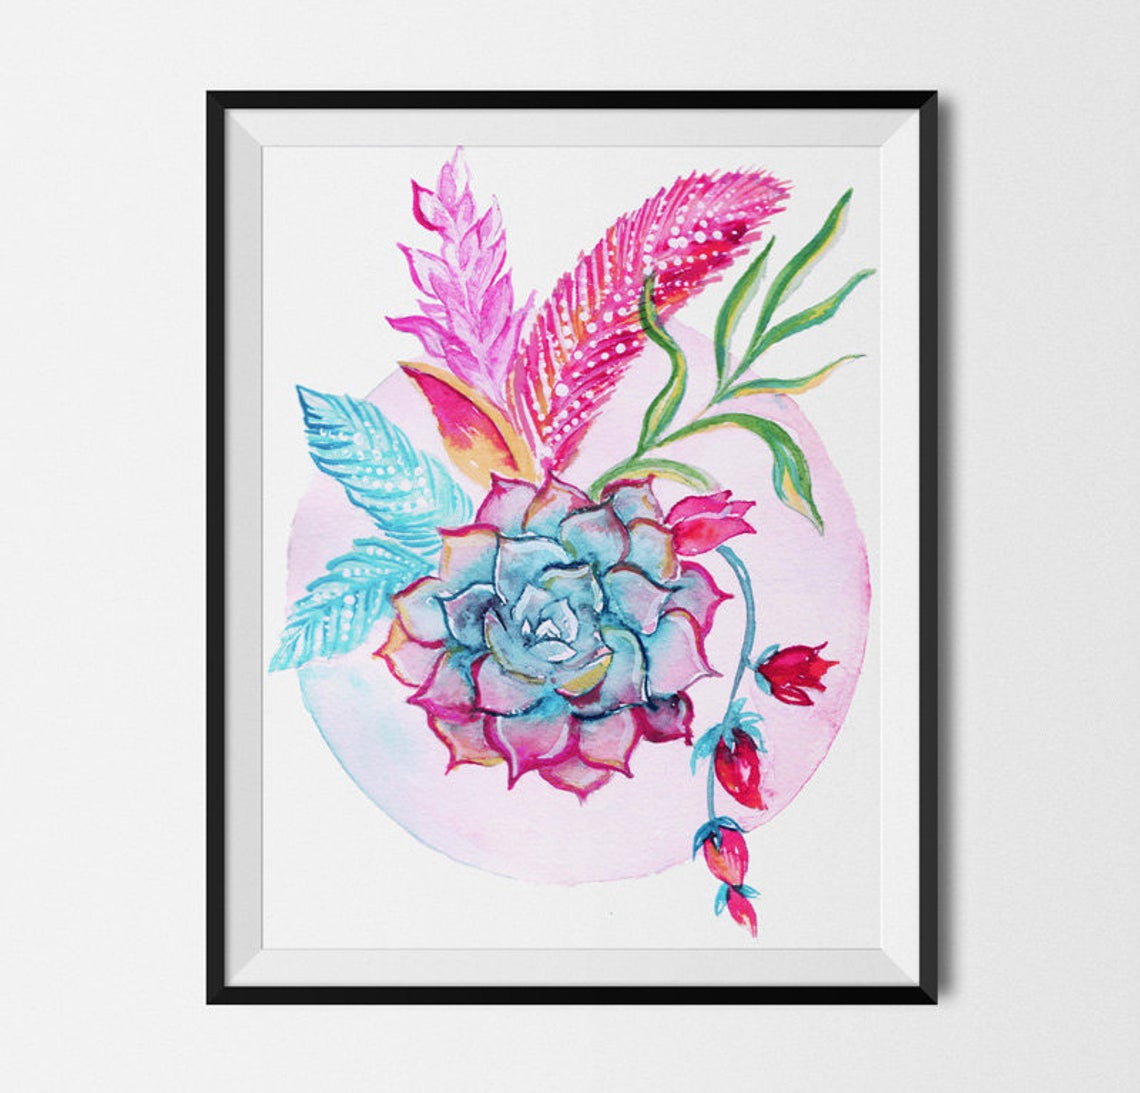 Watercolour Floral Flowers Print, Boho Girl Wall Art